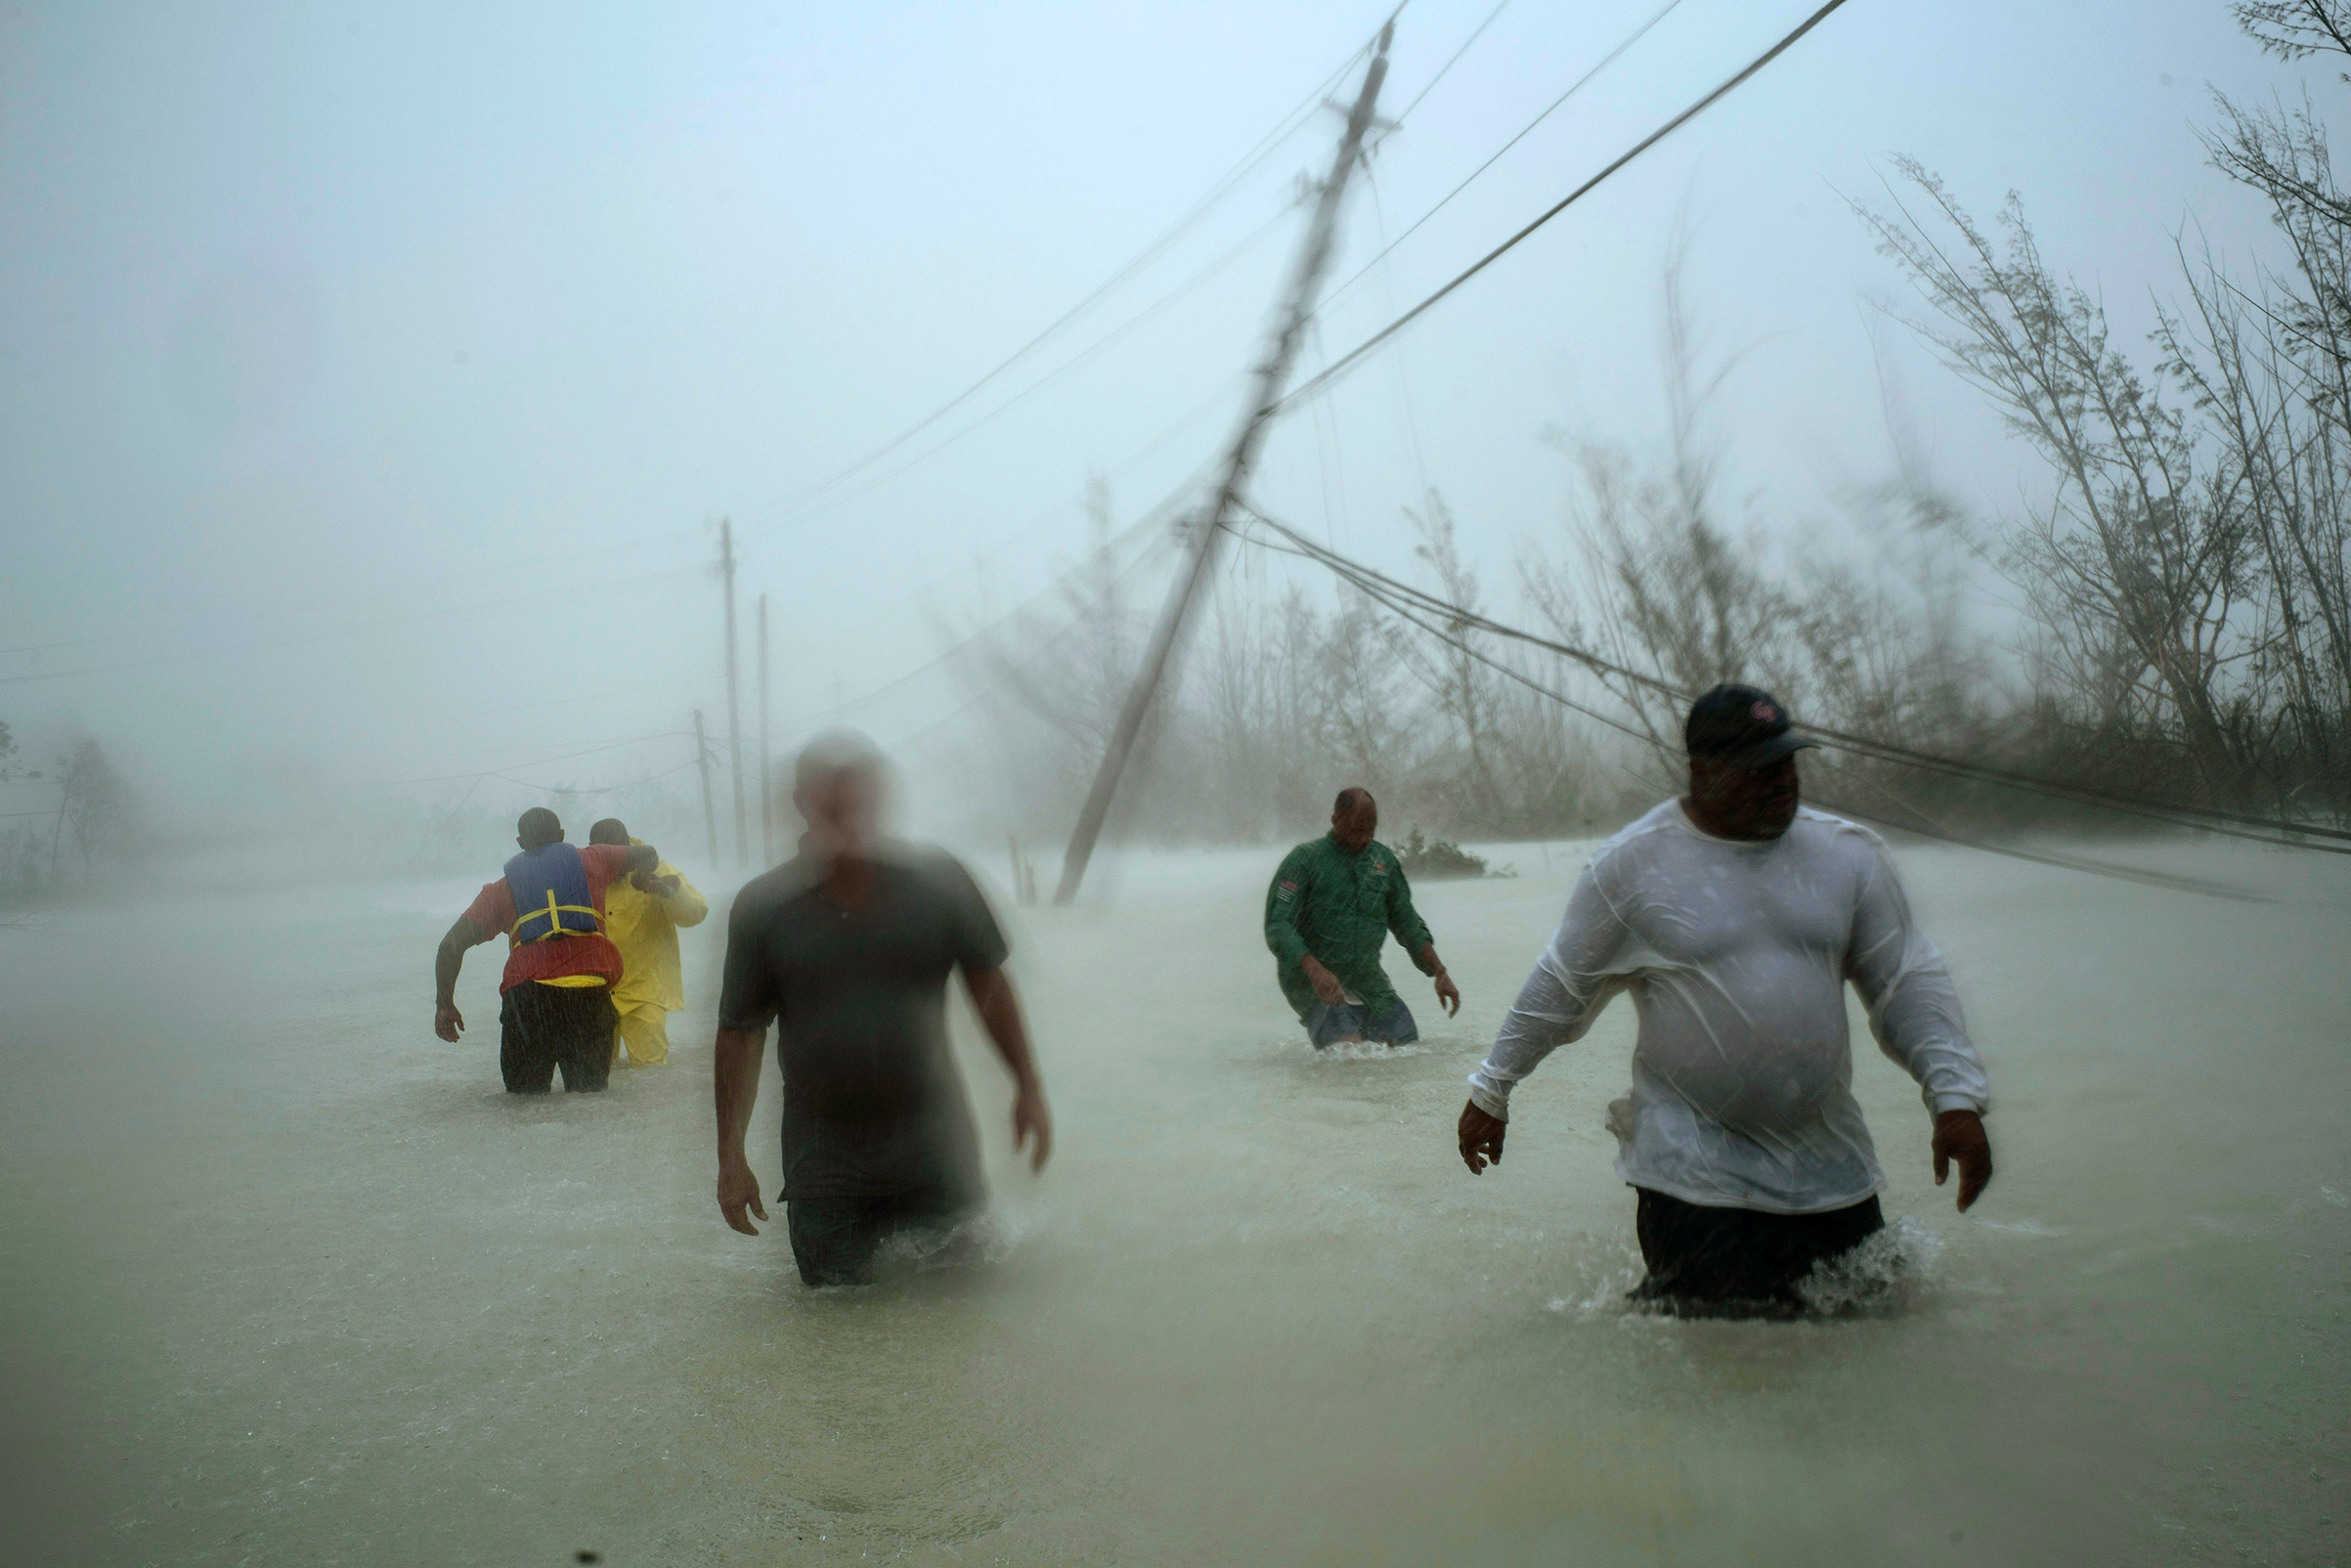 Volunteers wade through a flooded road against wind and rain caused by Hurricane Dorian to rescue families near the Causarina bridge in Freeport, Grand Bahama, Bahamas, Sept. 3, 2019. The storm's winds and muddy floodwaters devastated thousands of homes, crippled hospitals and trapped people in attics.